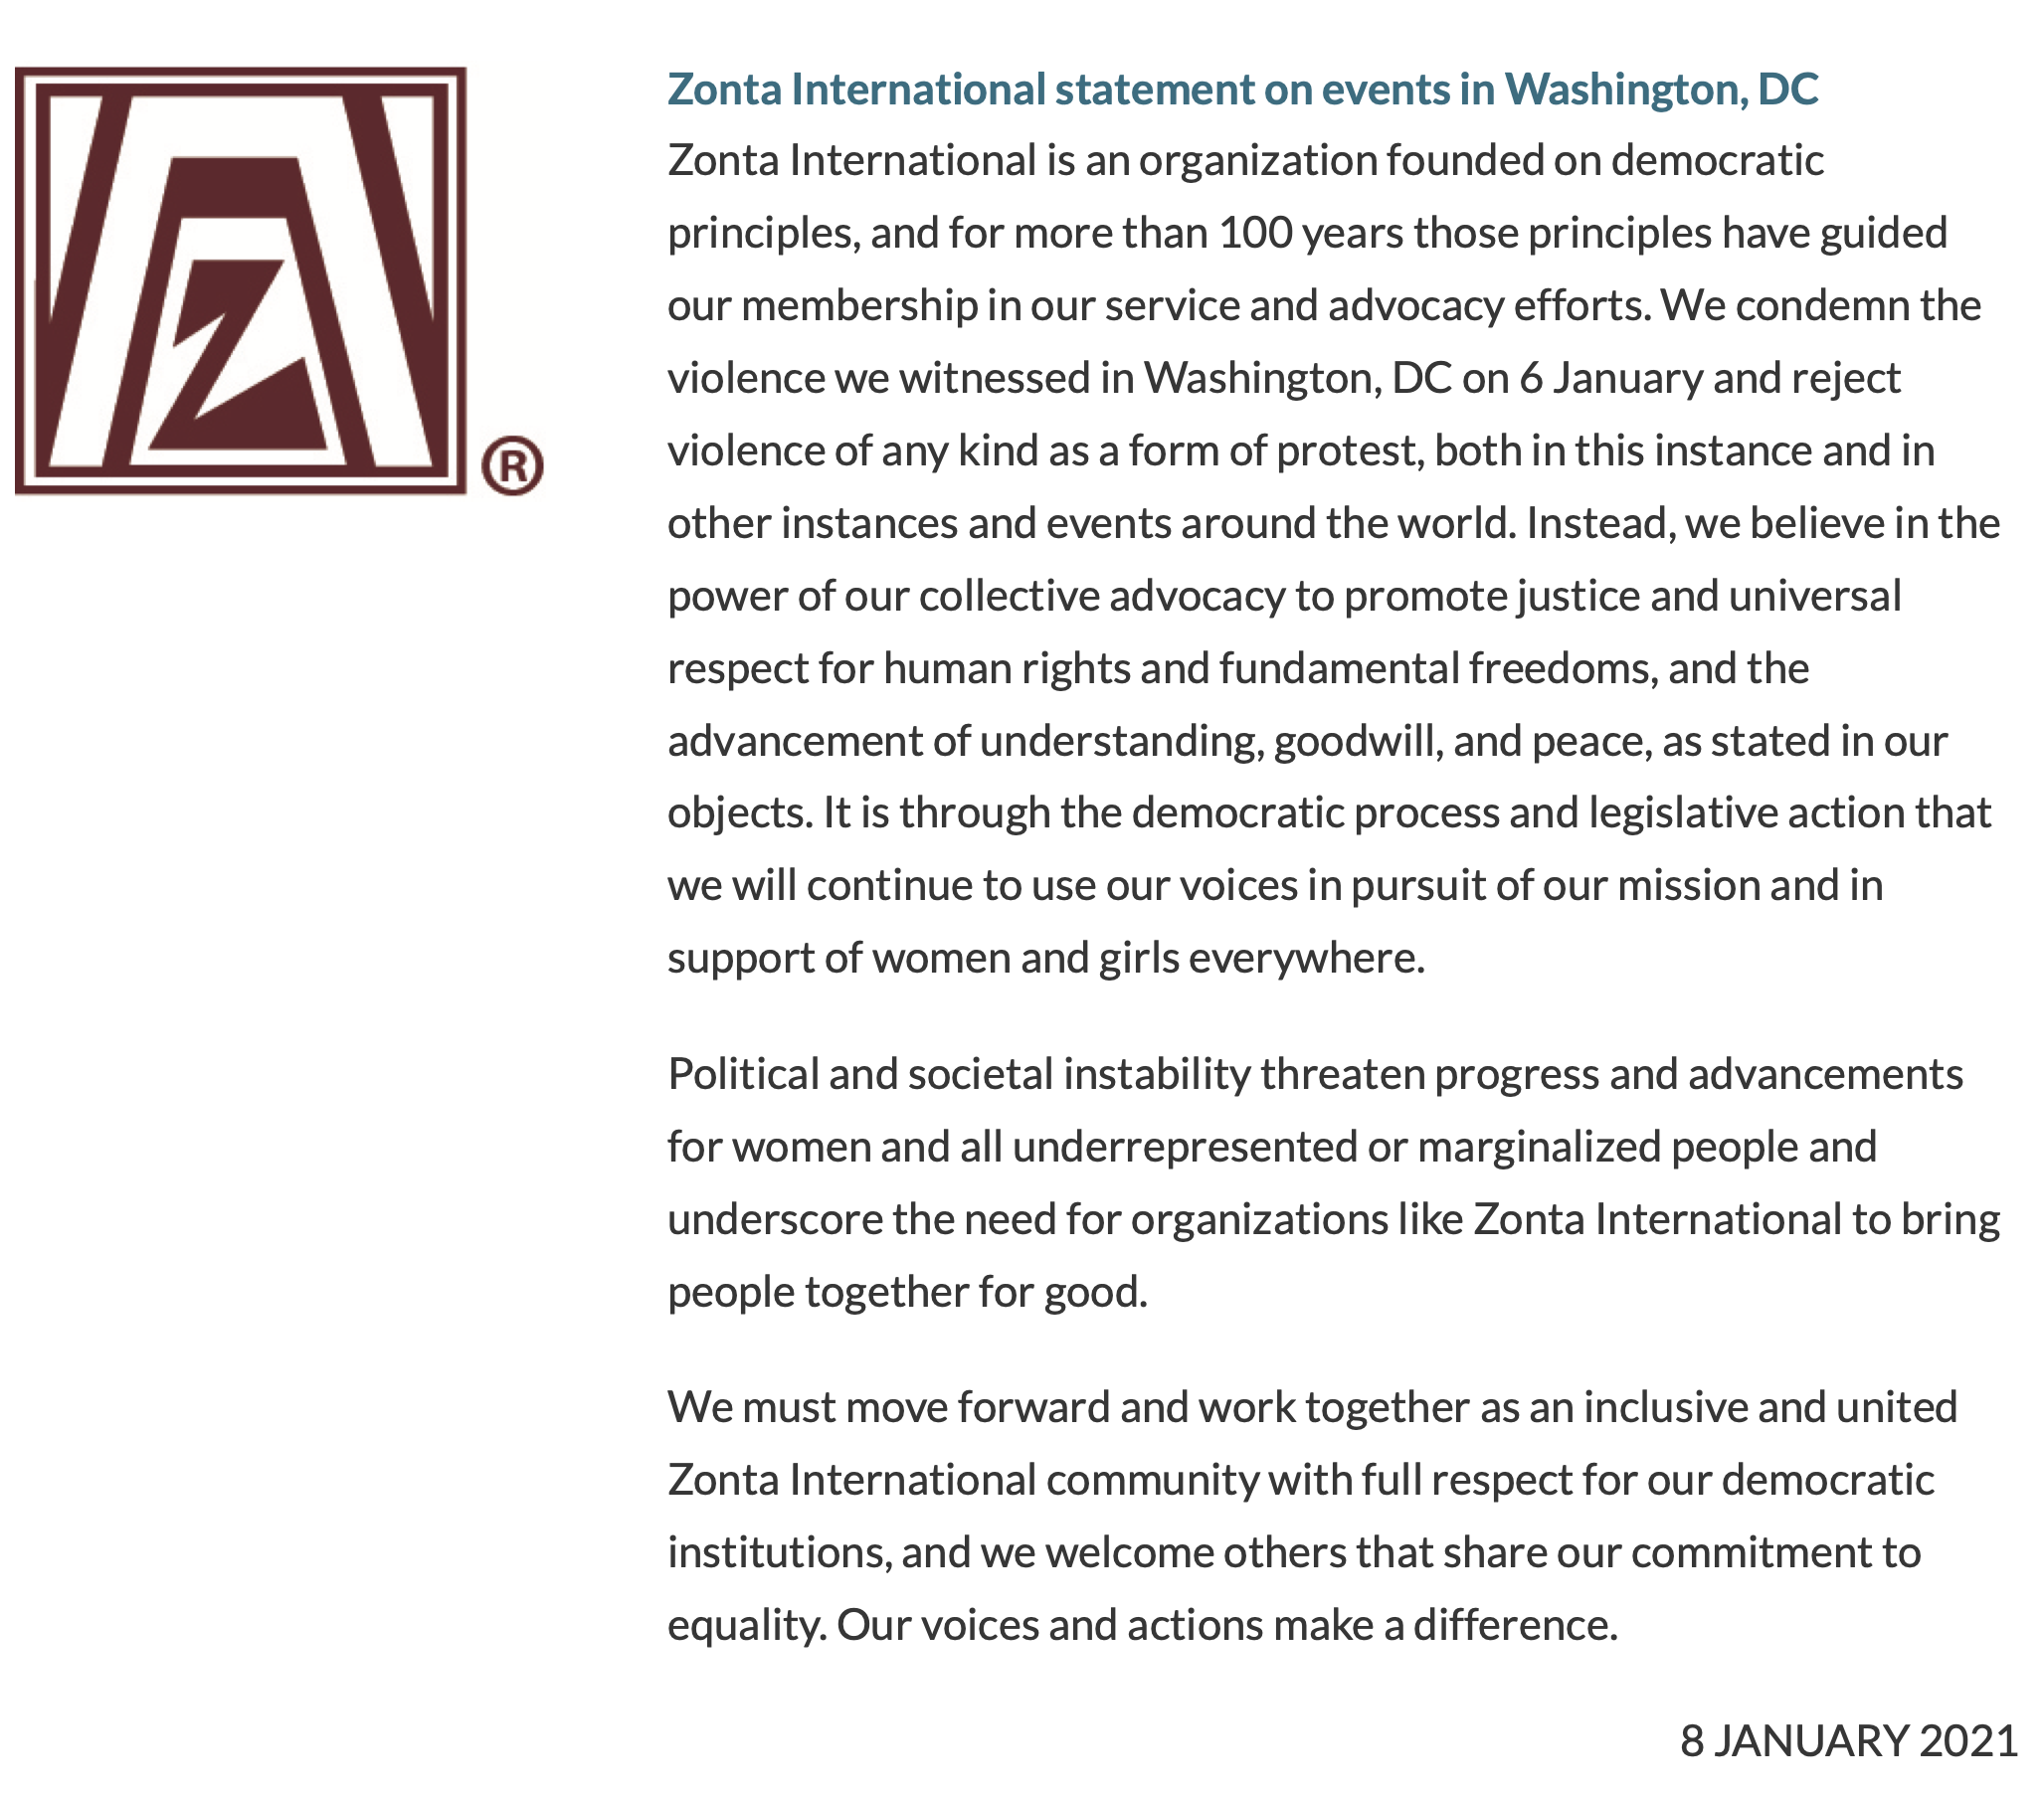 ZI Statement on events in Washington, DC.png